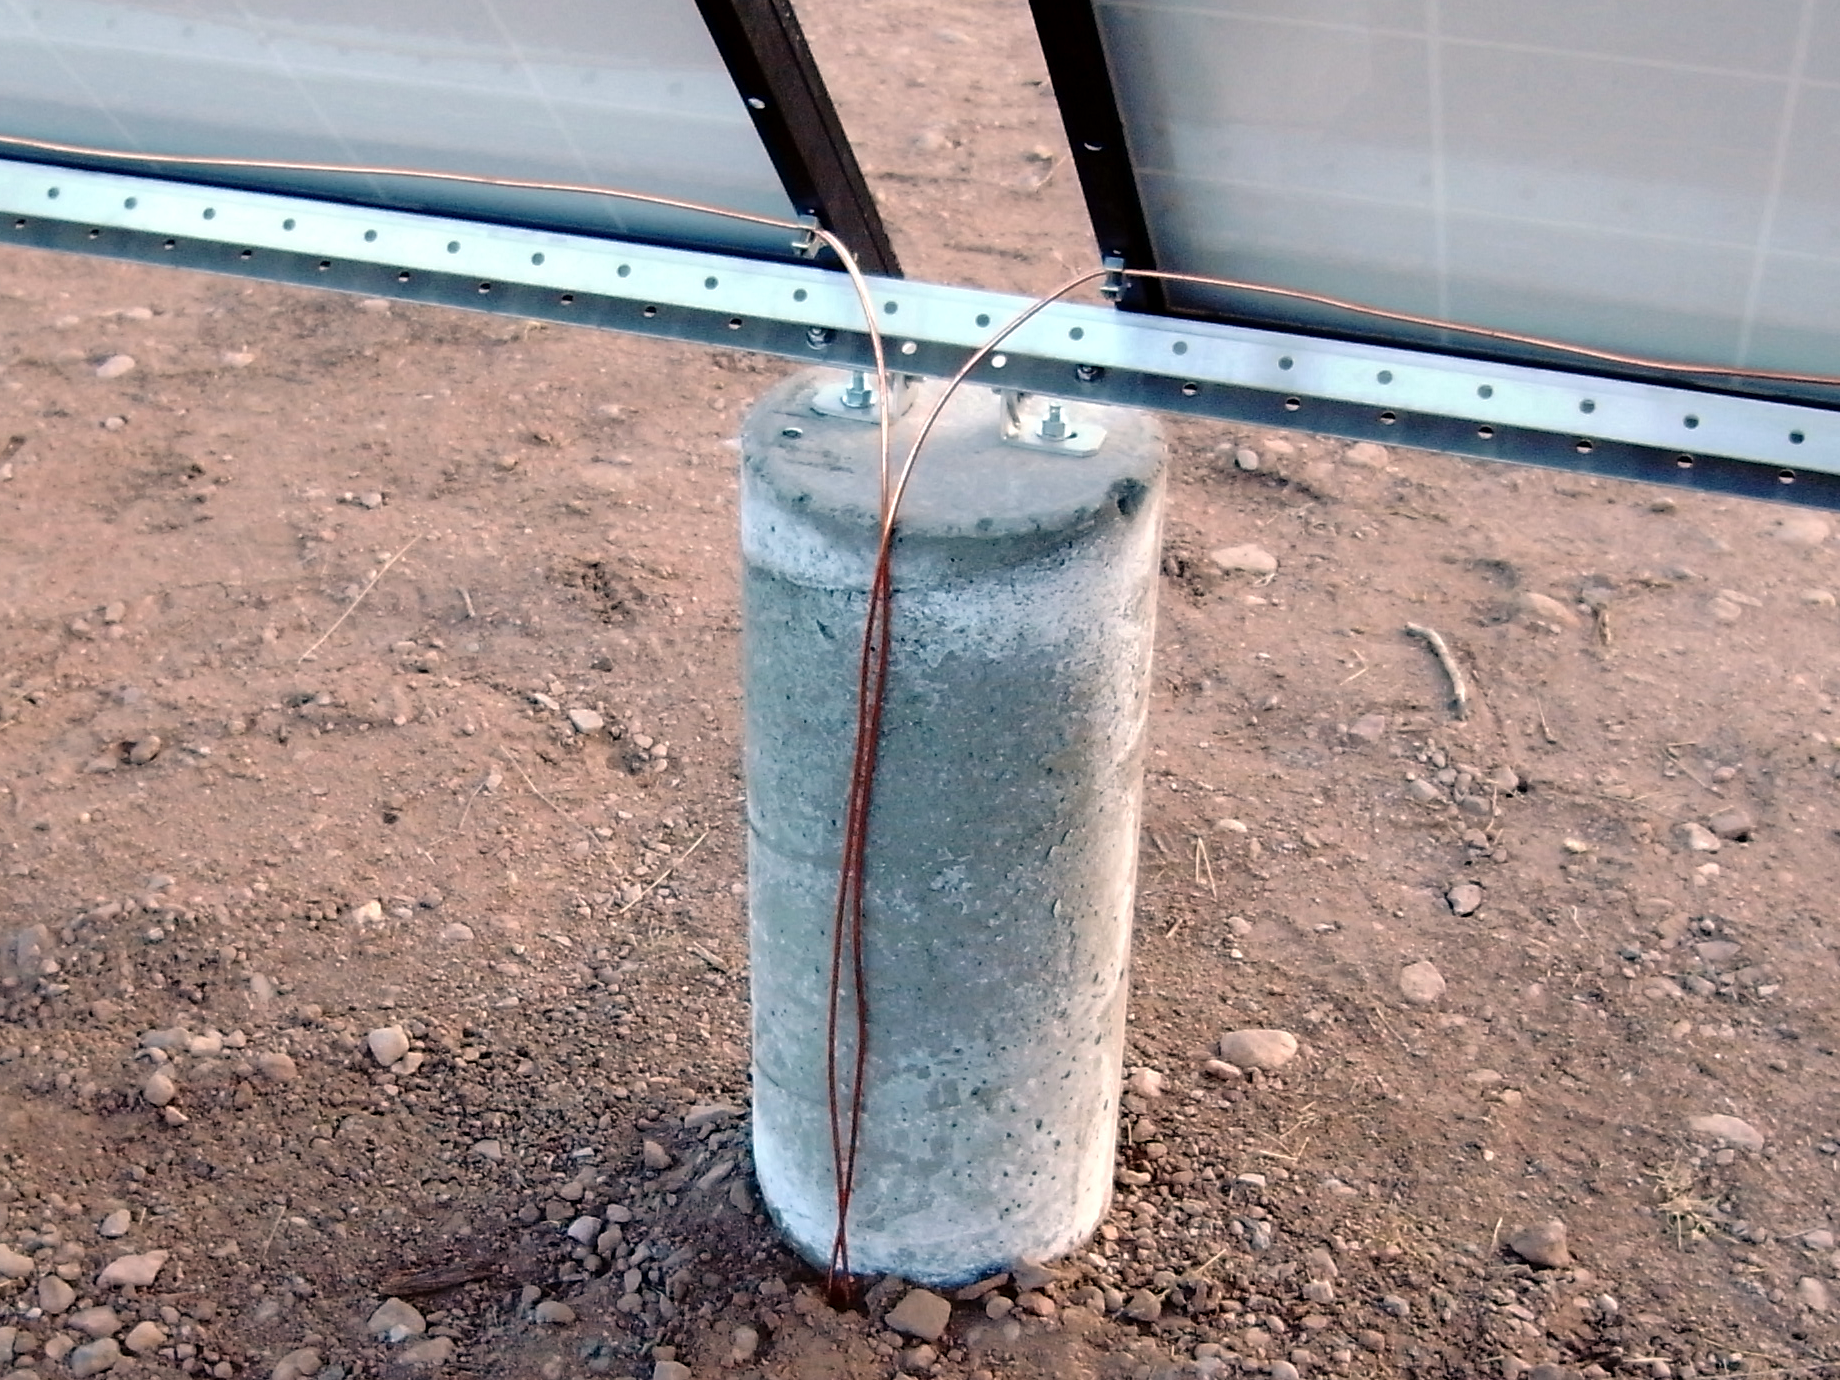 Ground wires attached